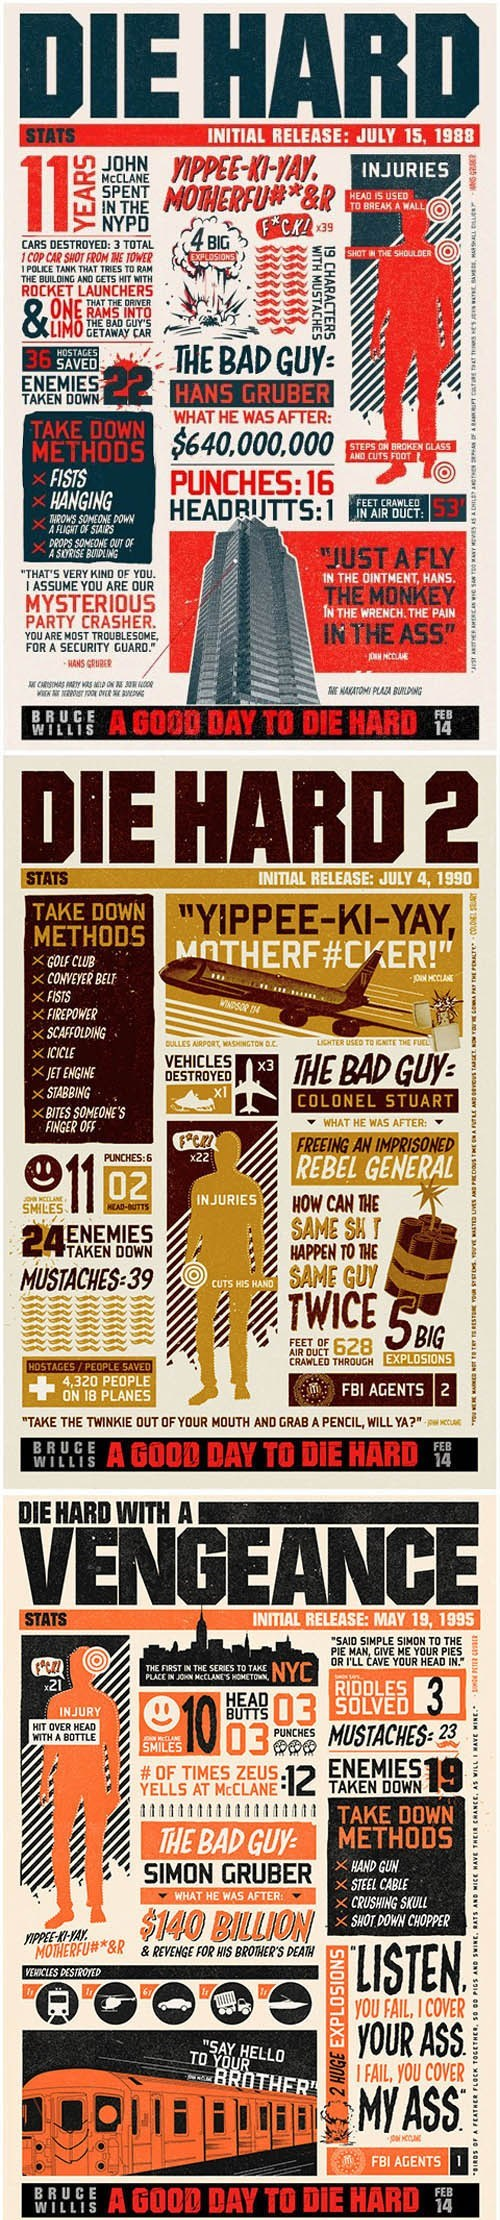 Die Hard by the Numbers